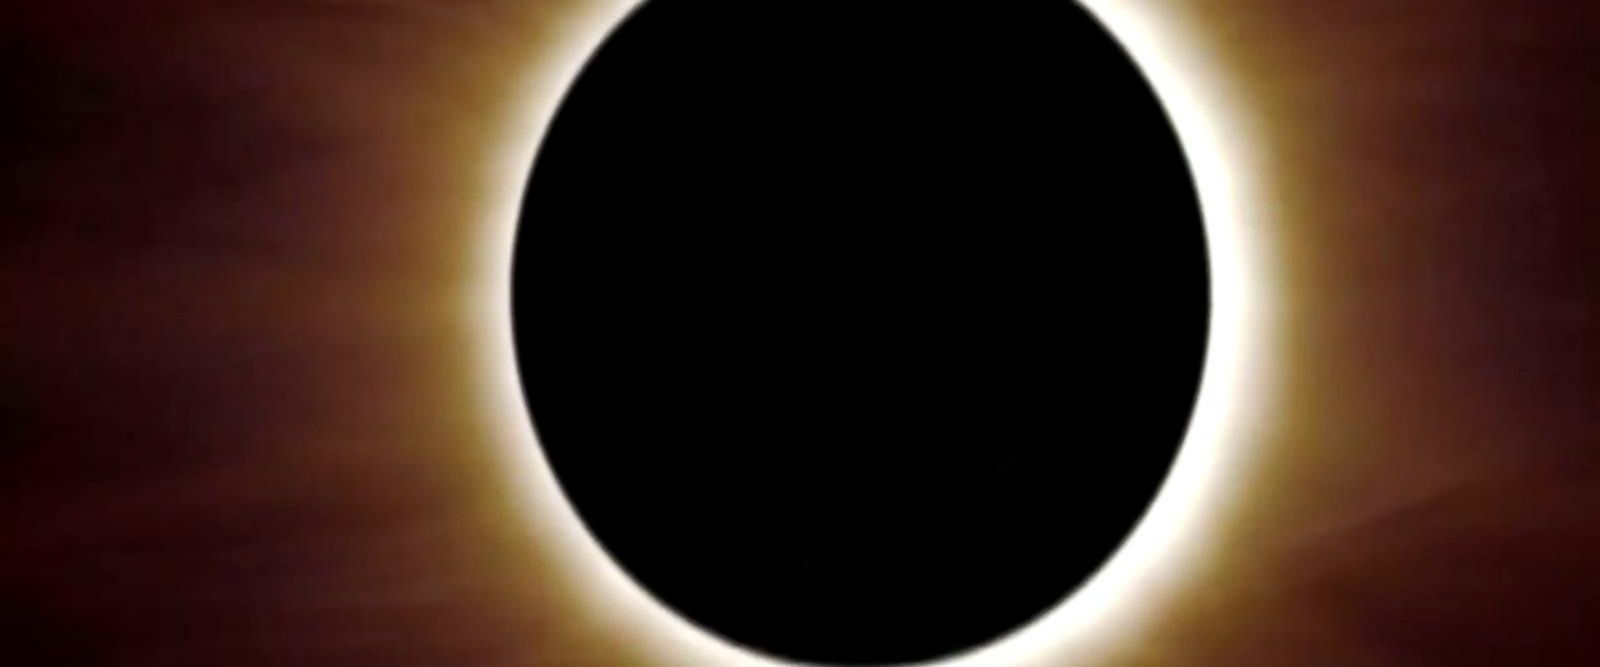 VIDEO: Countdown to the historic total eclipse